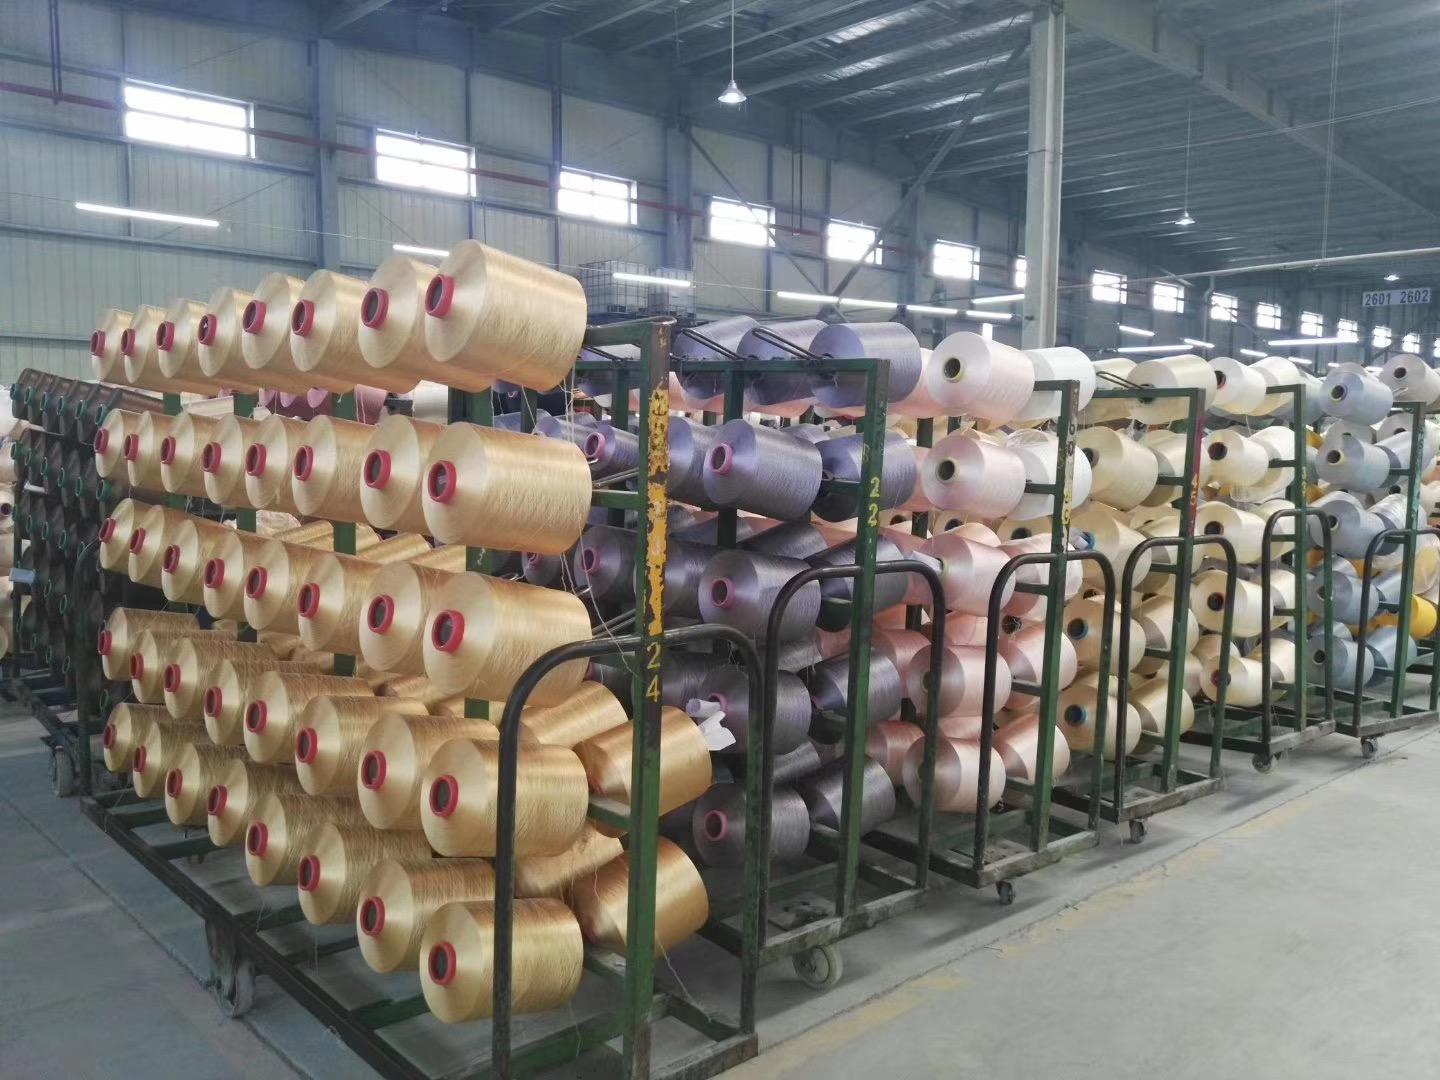 Draw Textured Yarn polyester yarn 75 36 polyester textured yarn and dty yarn type 75/36 SD NIM